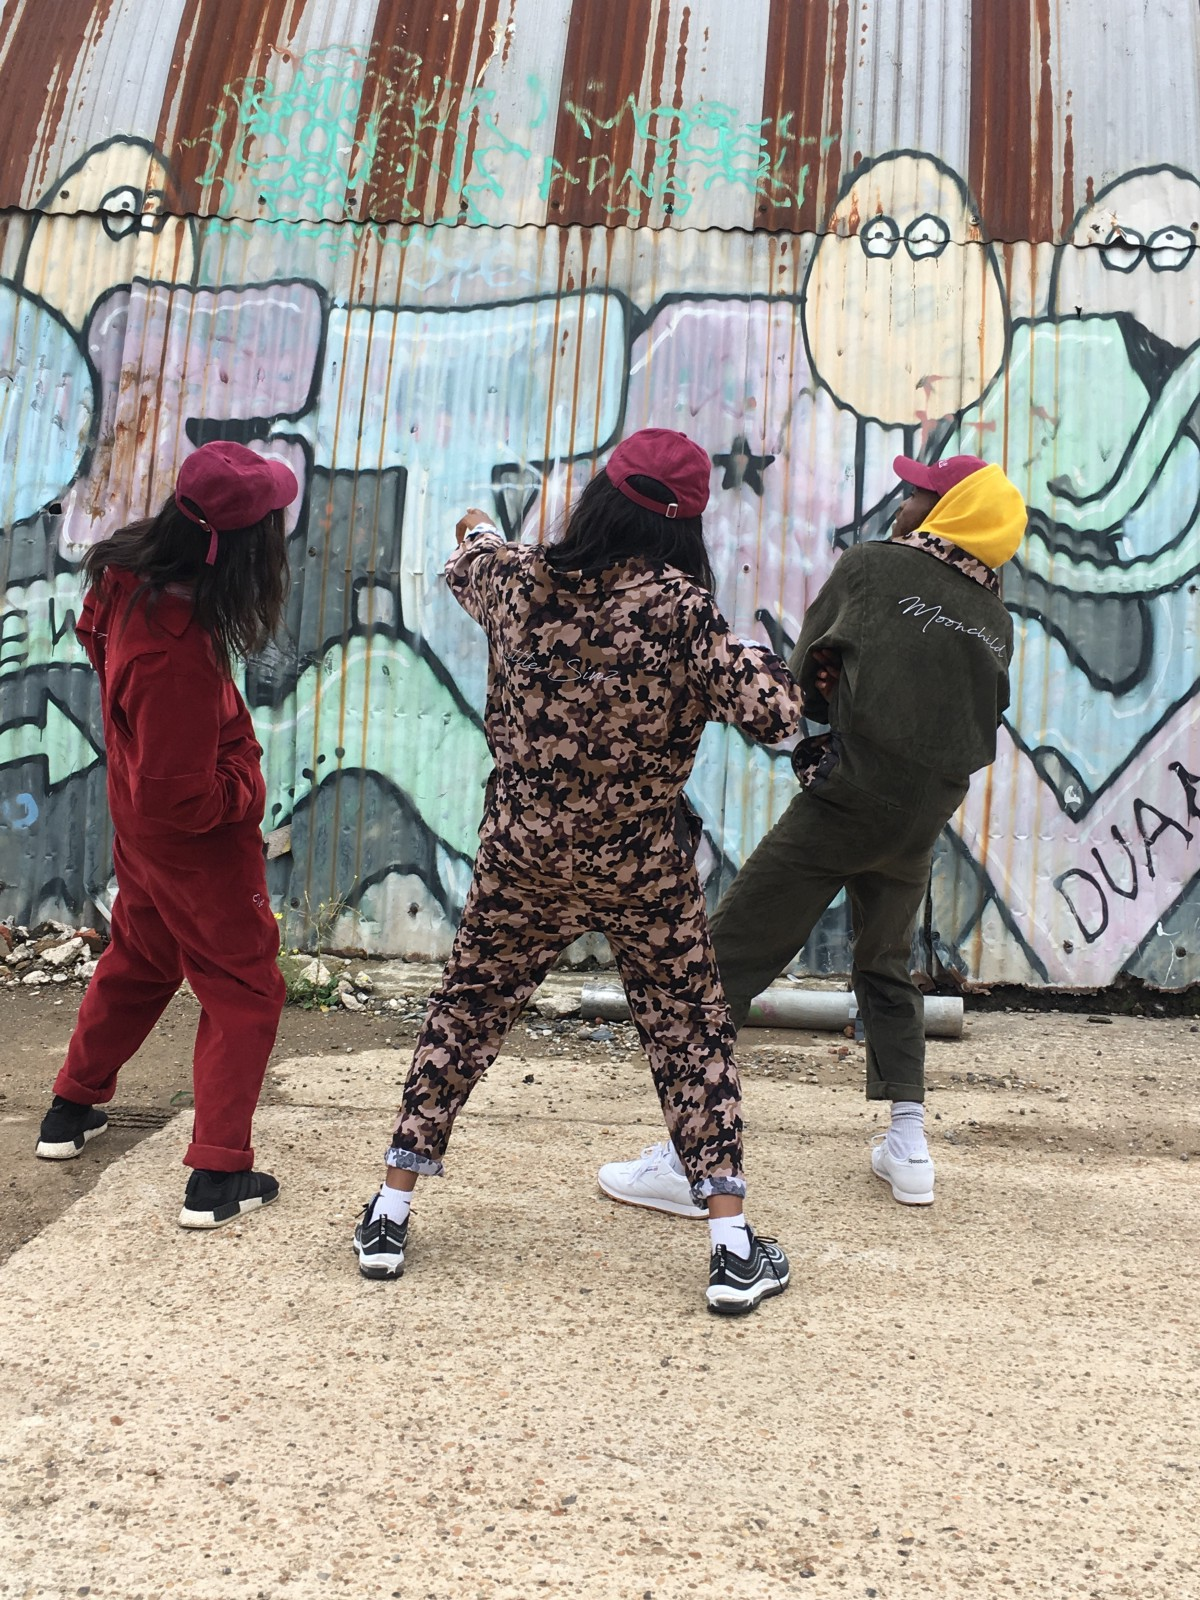 """On the set of """"Zone 3"""" music video: Josh Arcé, Little Simz and Chuck cheesin'. Tilla, Simz and Chuck modeling their customized Space Age wear jumpsuits."""